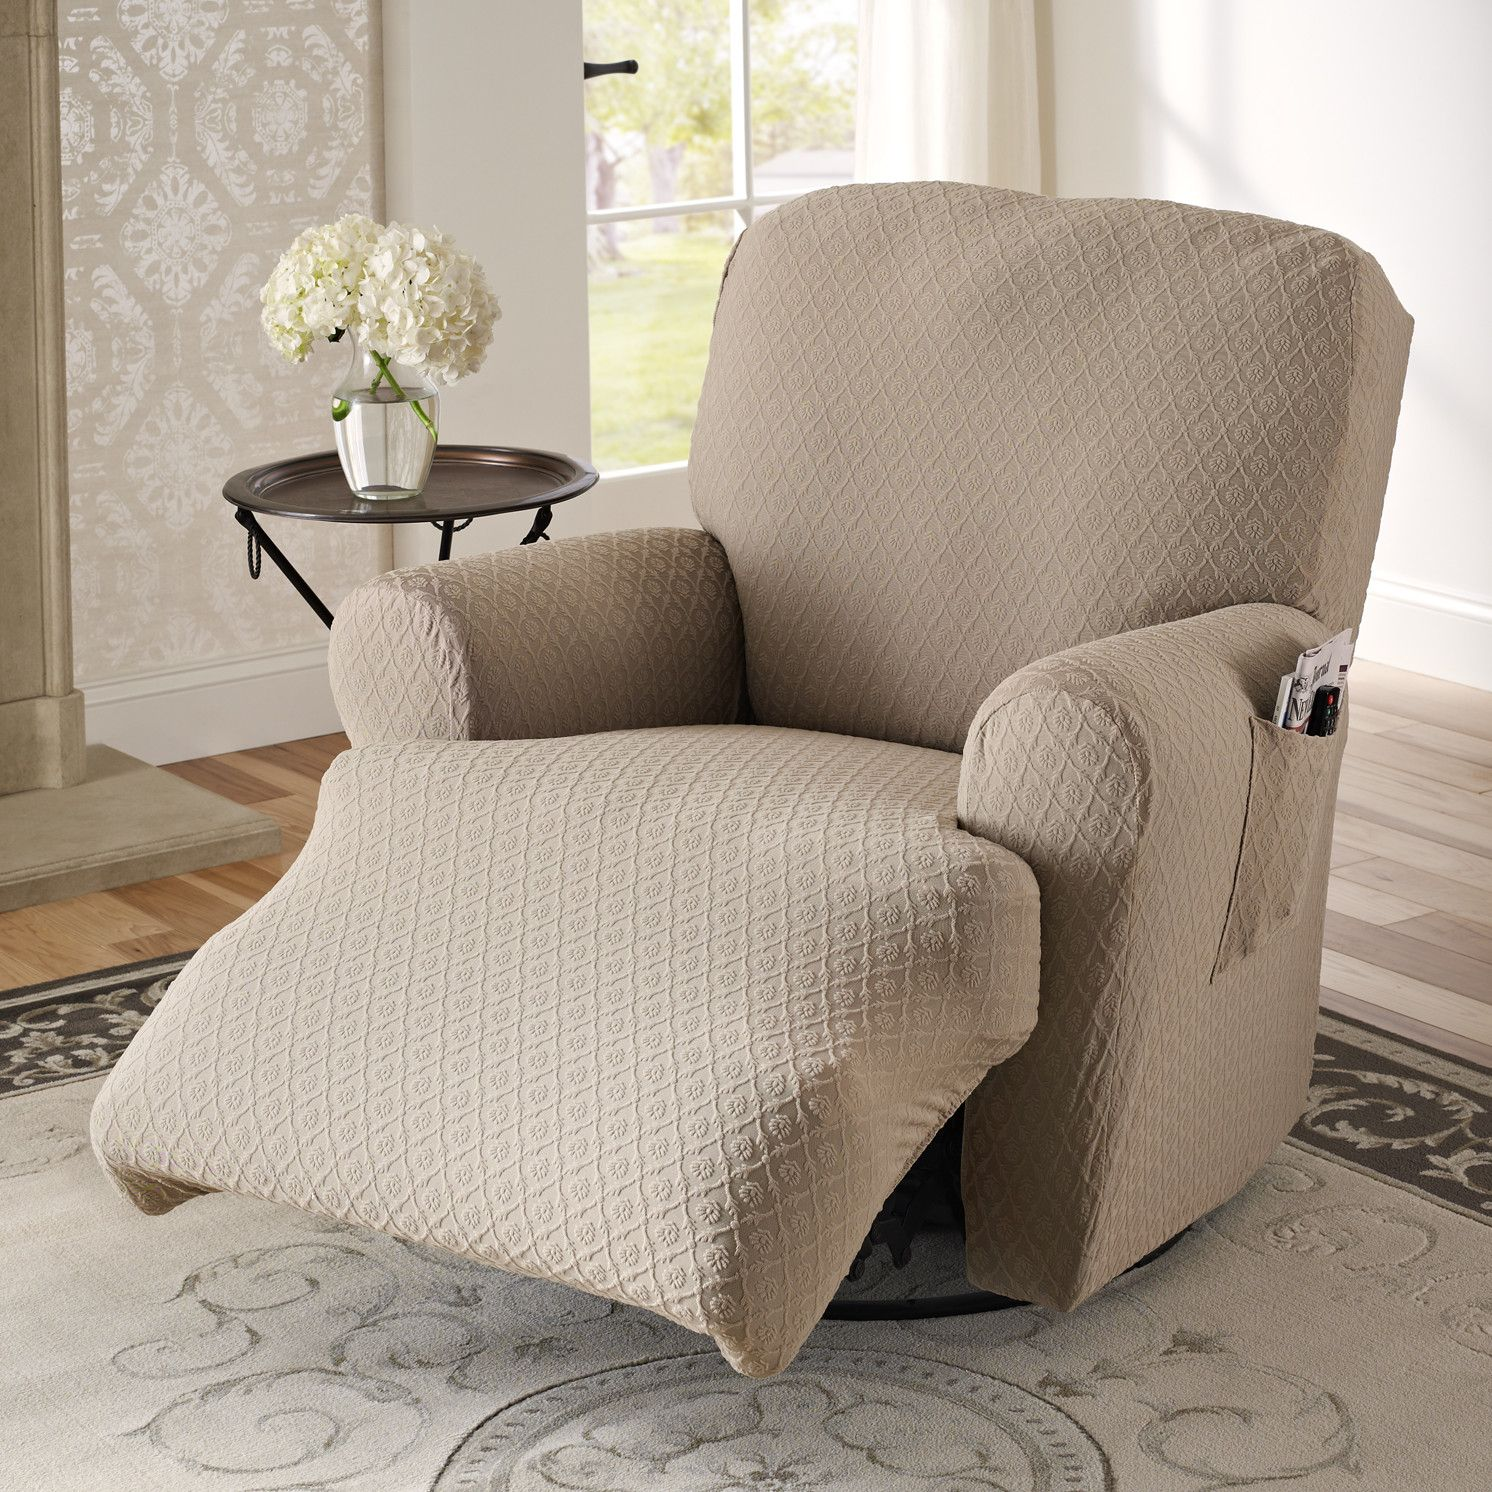 Innovative Textile Solutions Victoria Recliner Slipcover